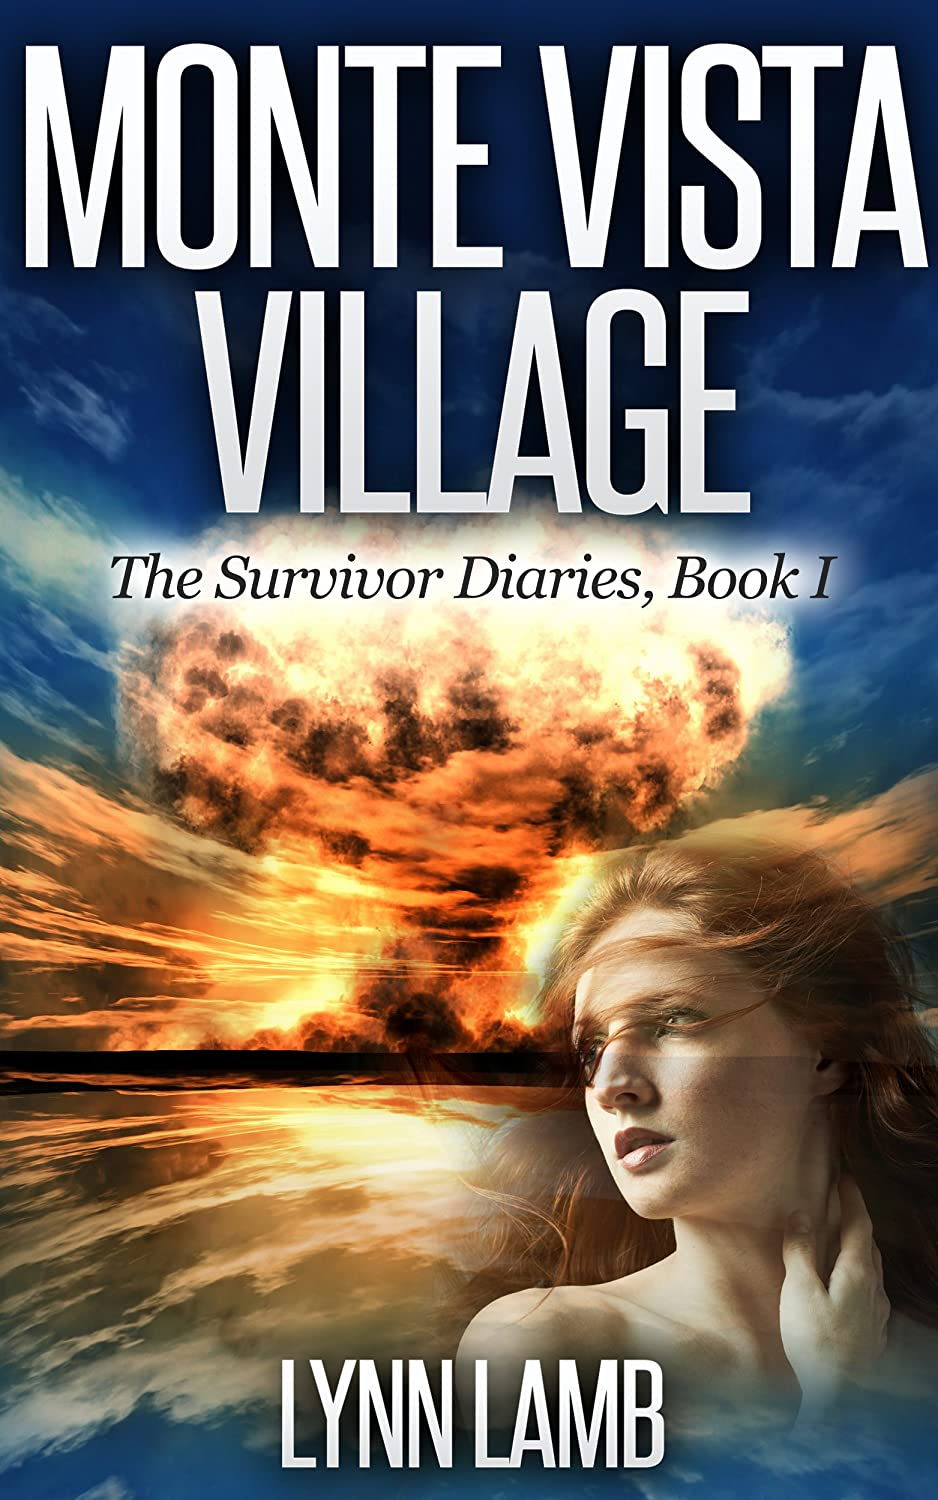 Monte Vista Village (The Survivor Diaries, Book 1) by Lynn Lamb